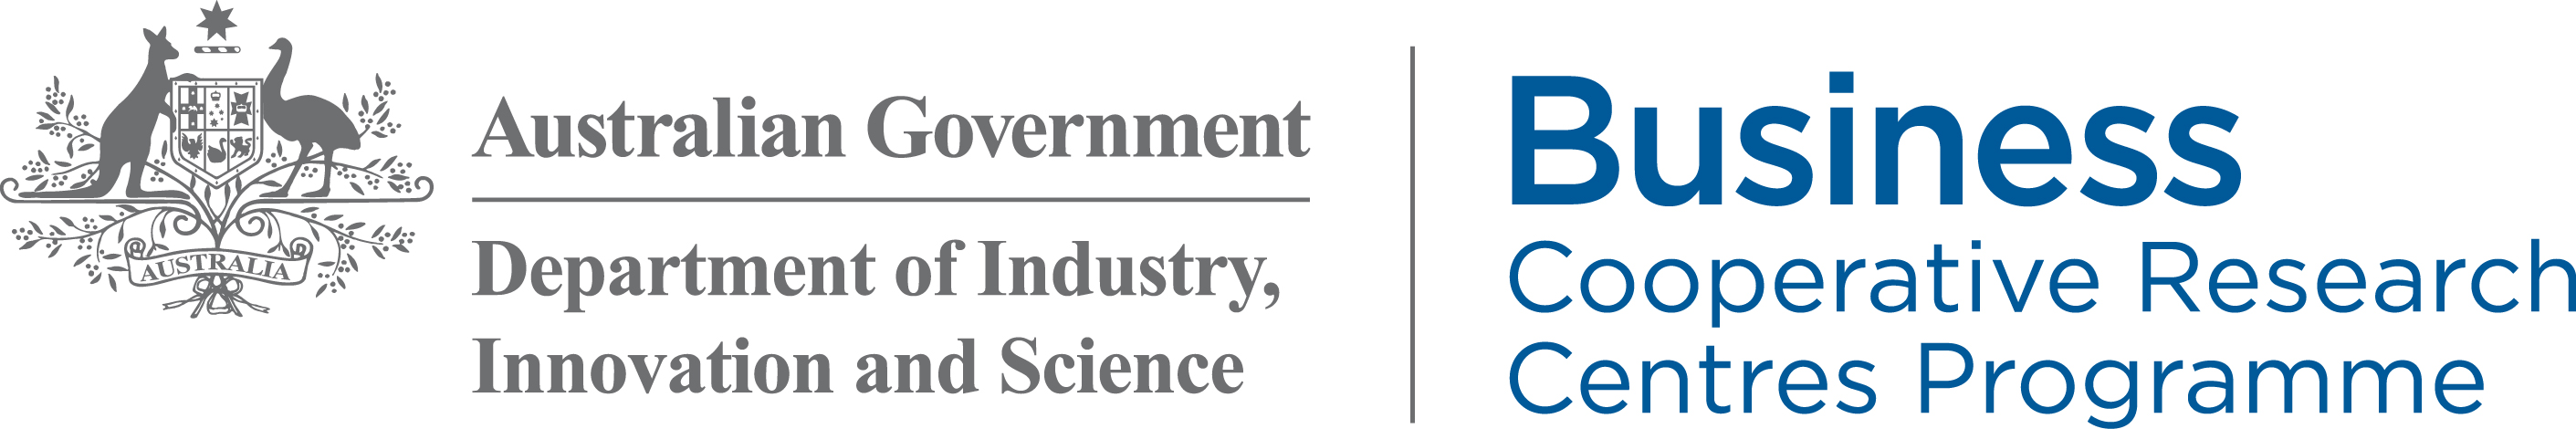 DIIS_CRC-Business-AusGov-Industry-CMYK